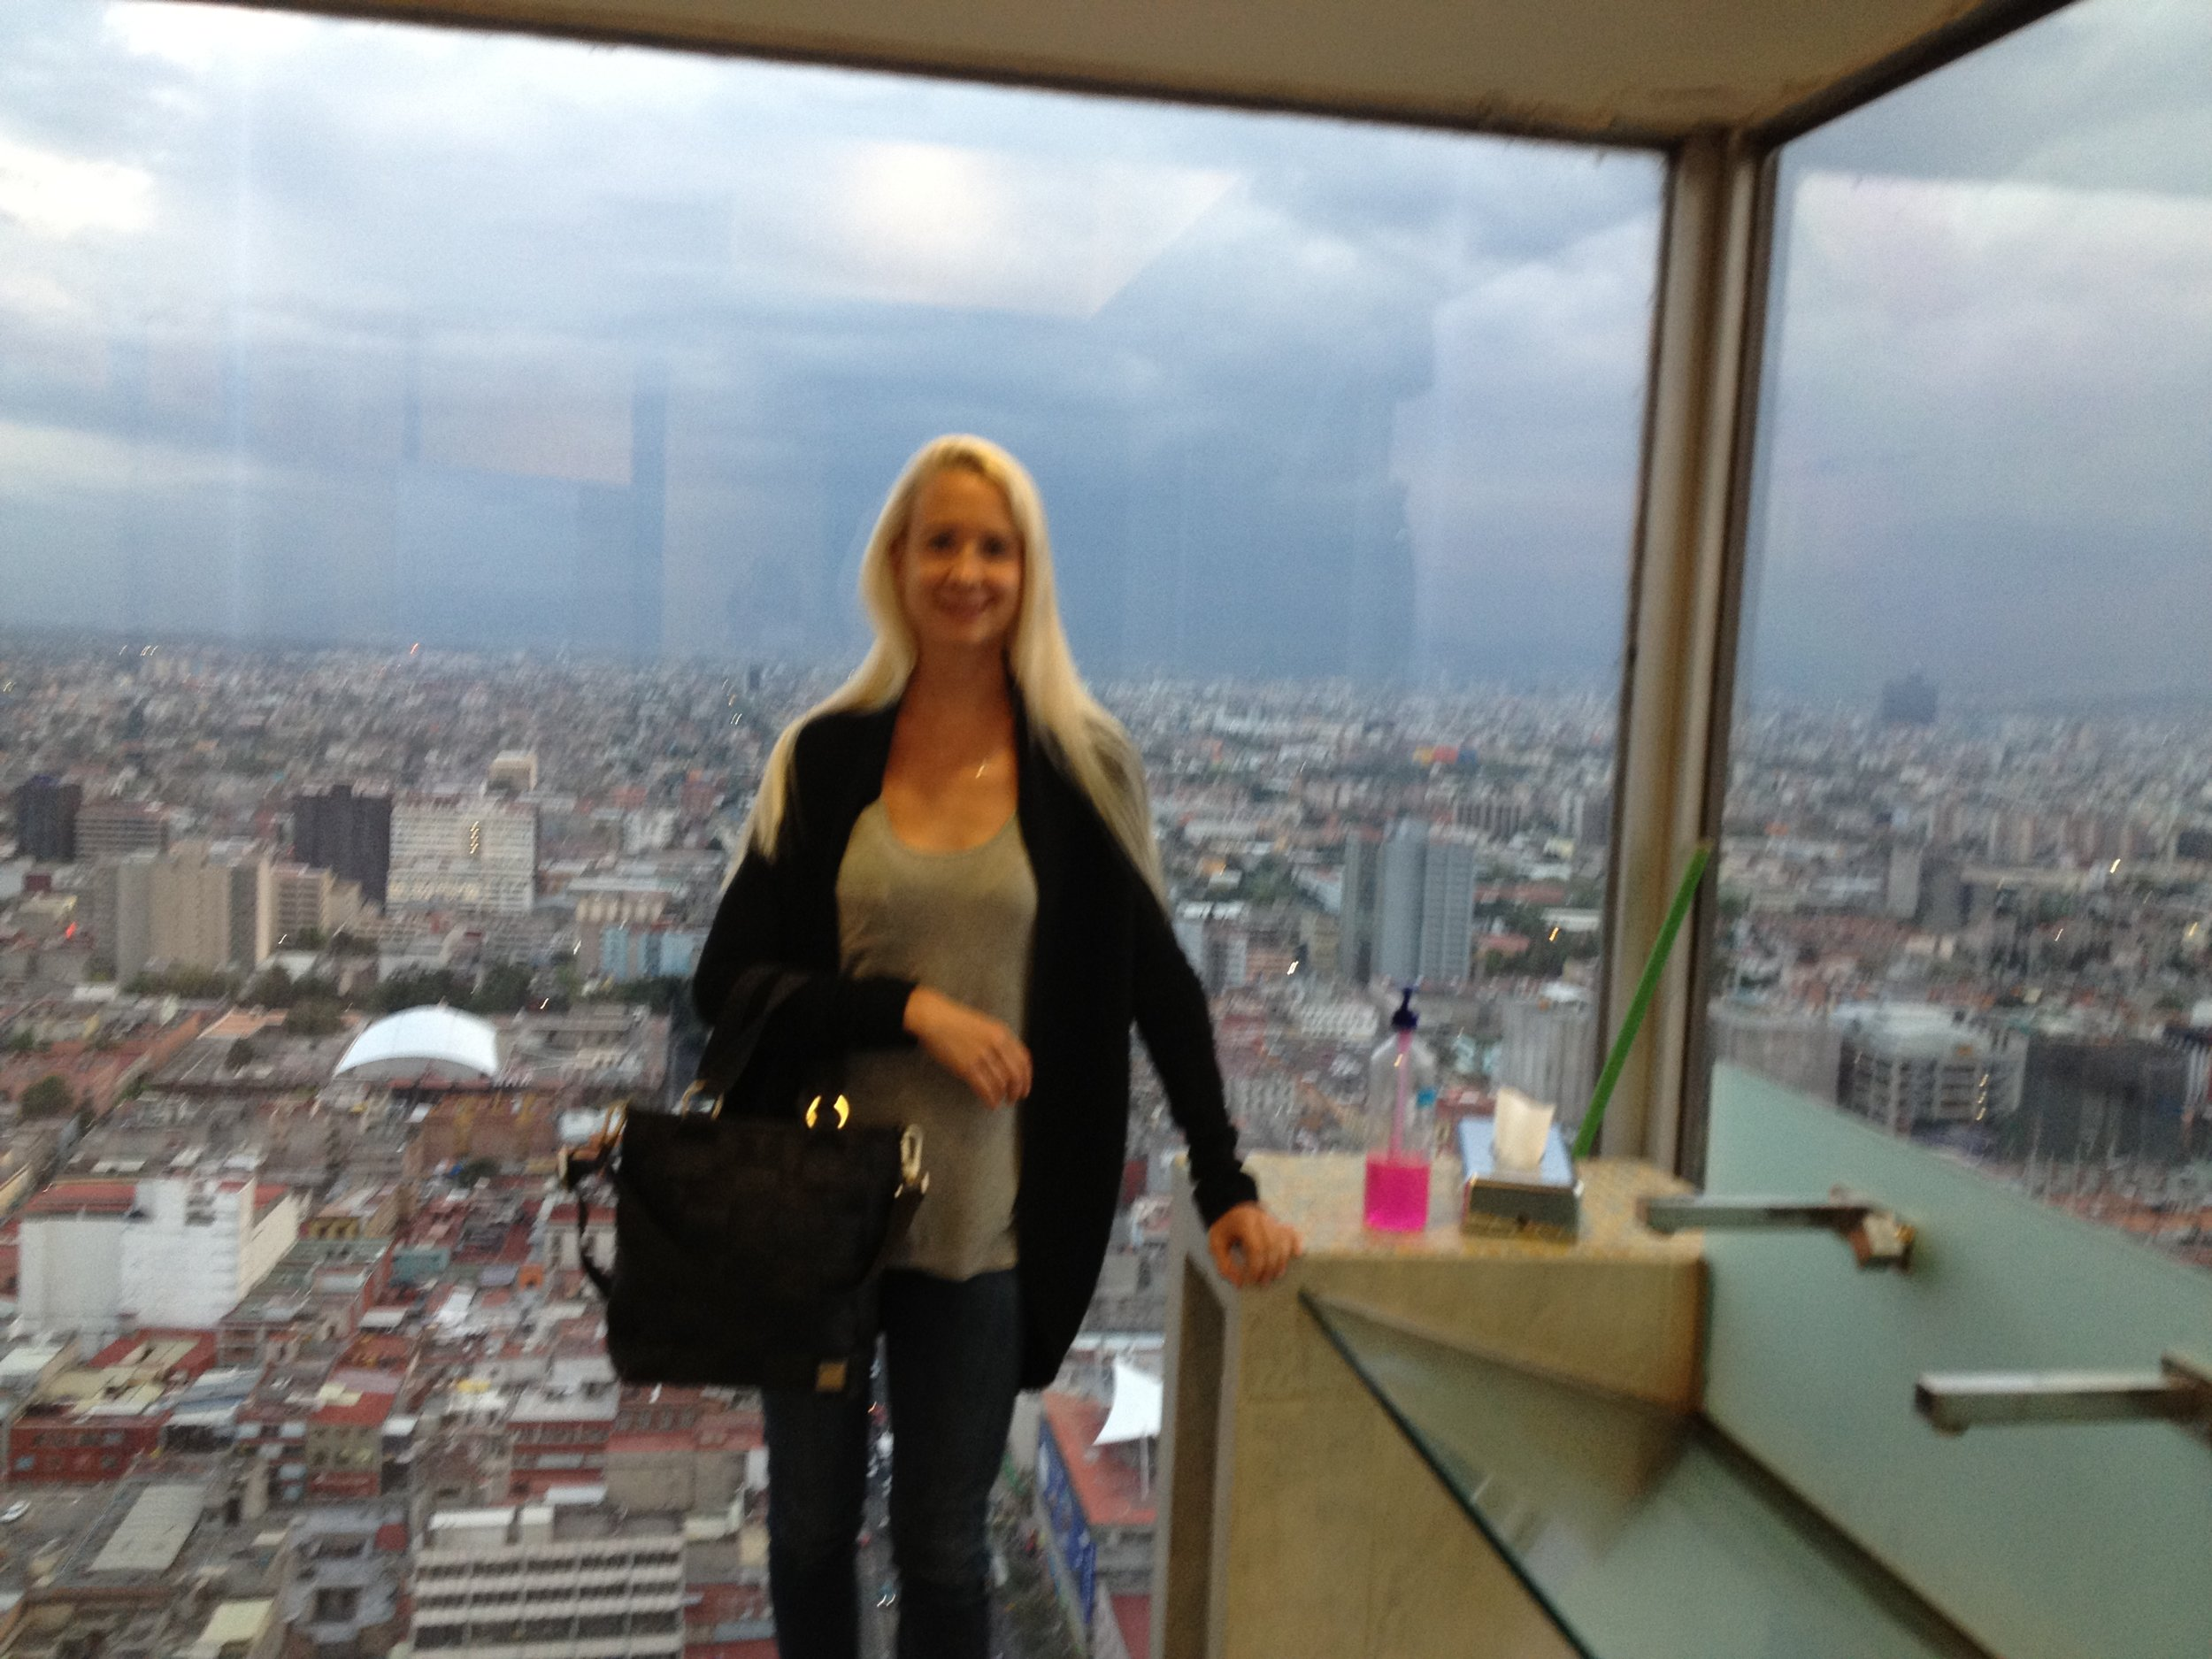 Me in the bathroom at the Latin American Tower-- picture the views from the bar!